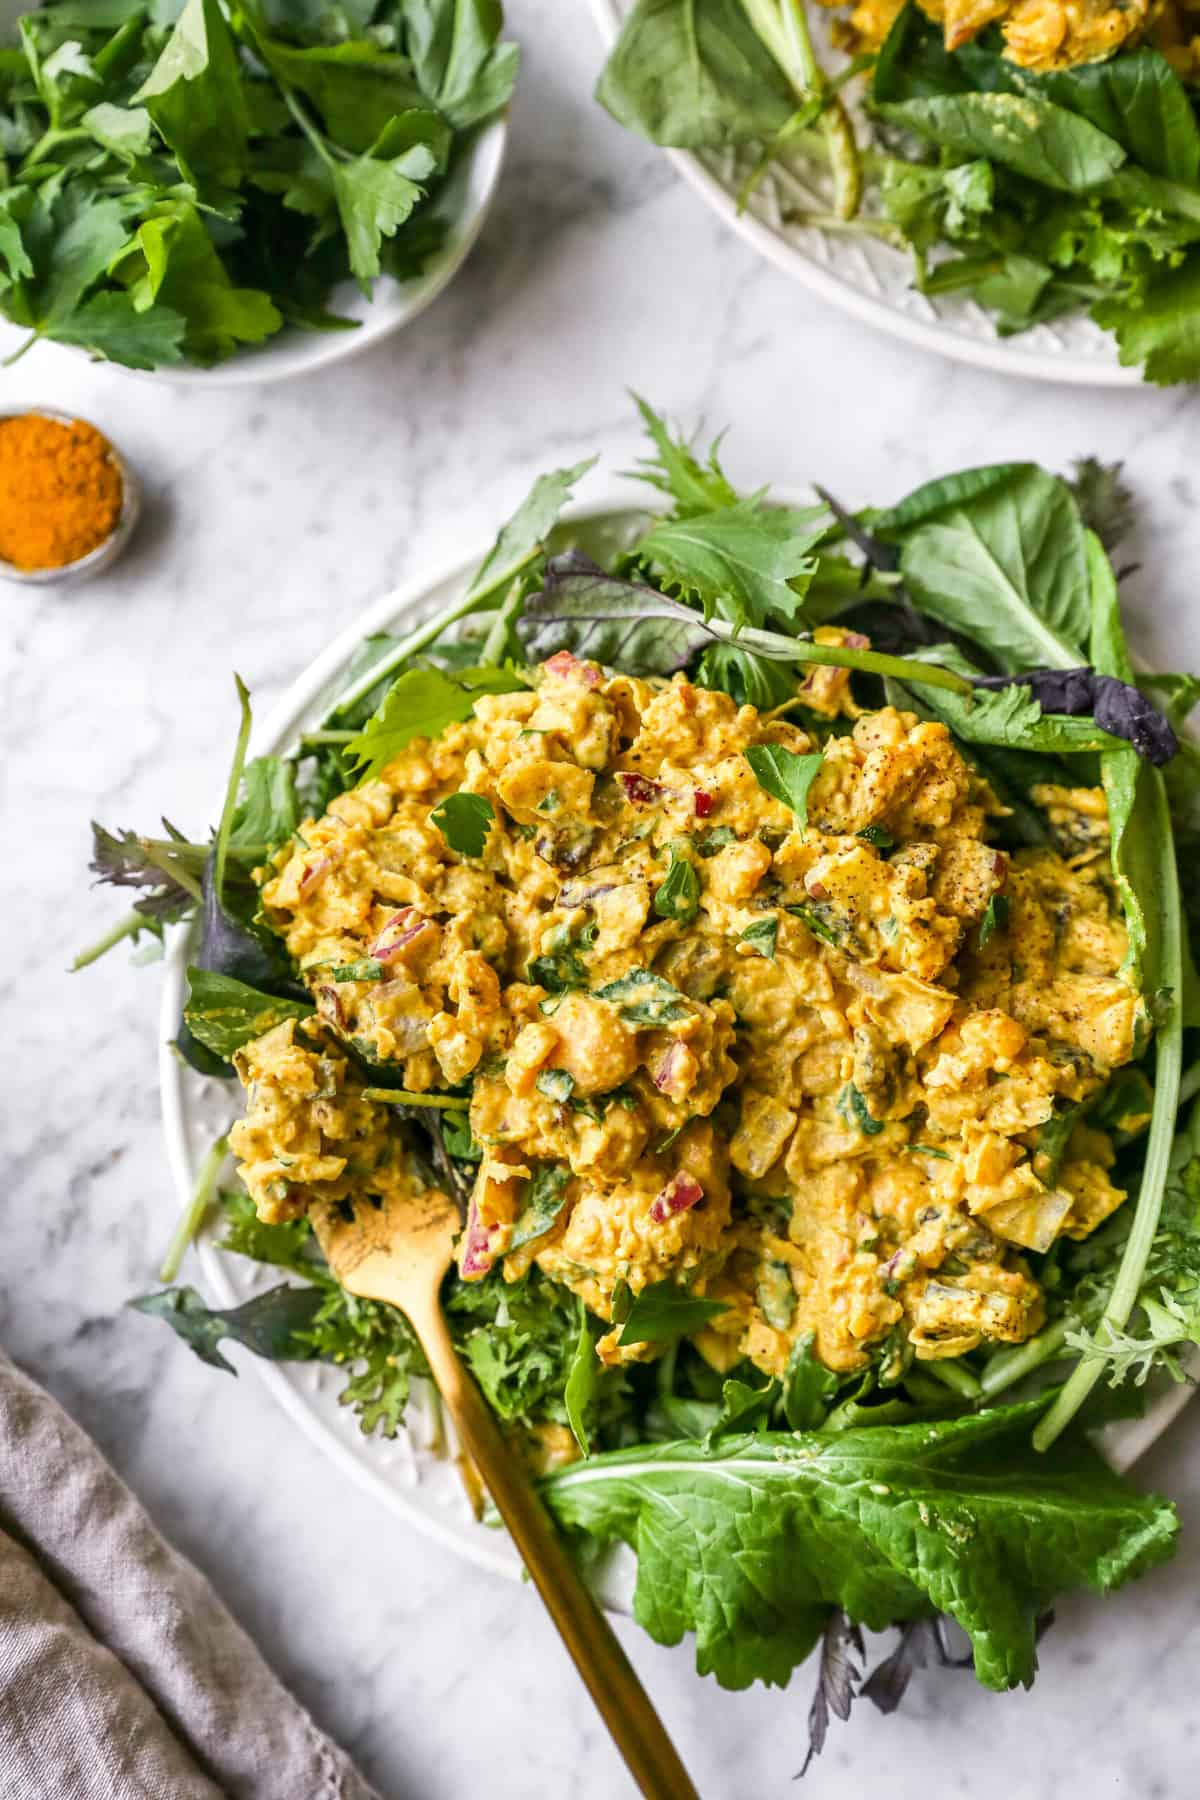 curried chickpea salad on a plate with other plates in the background